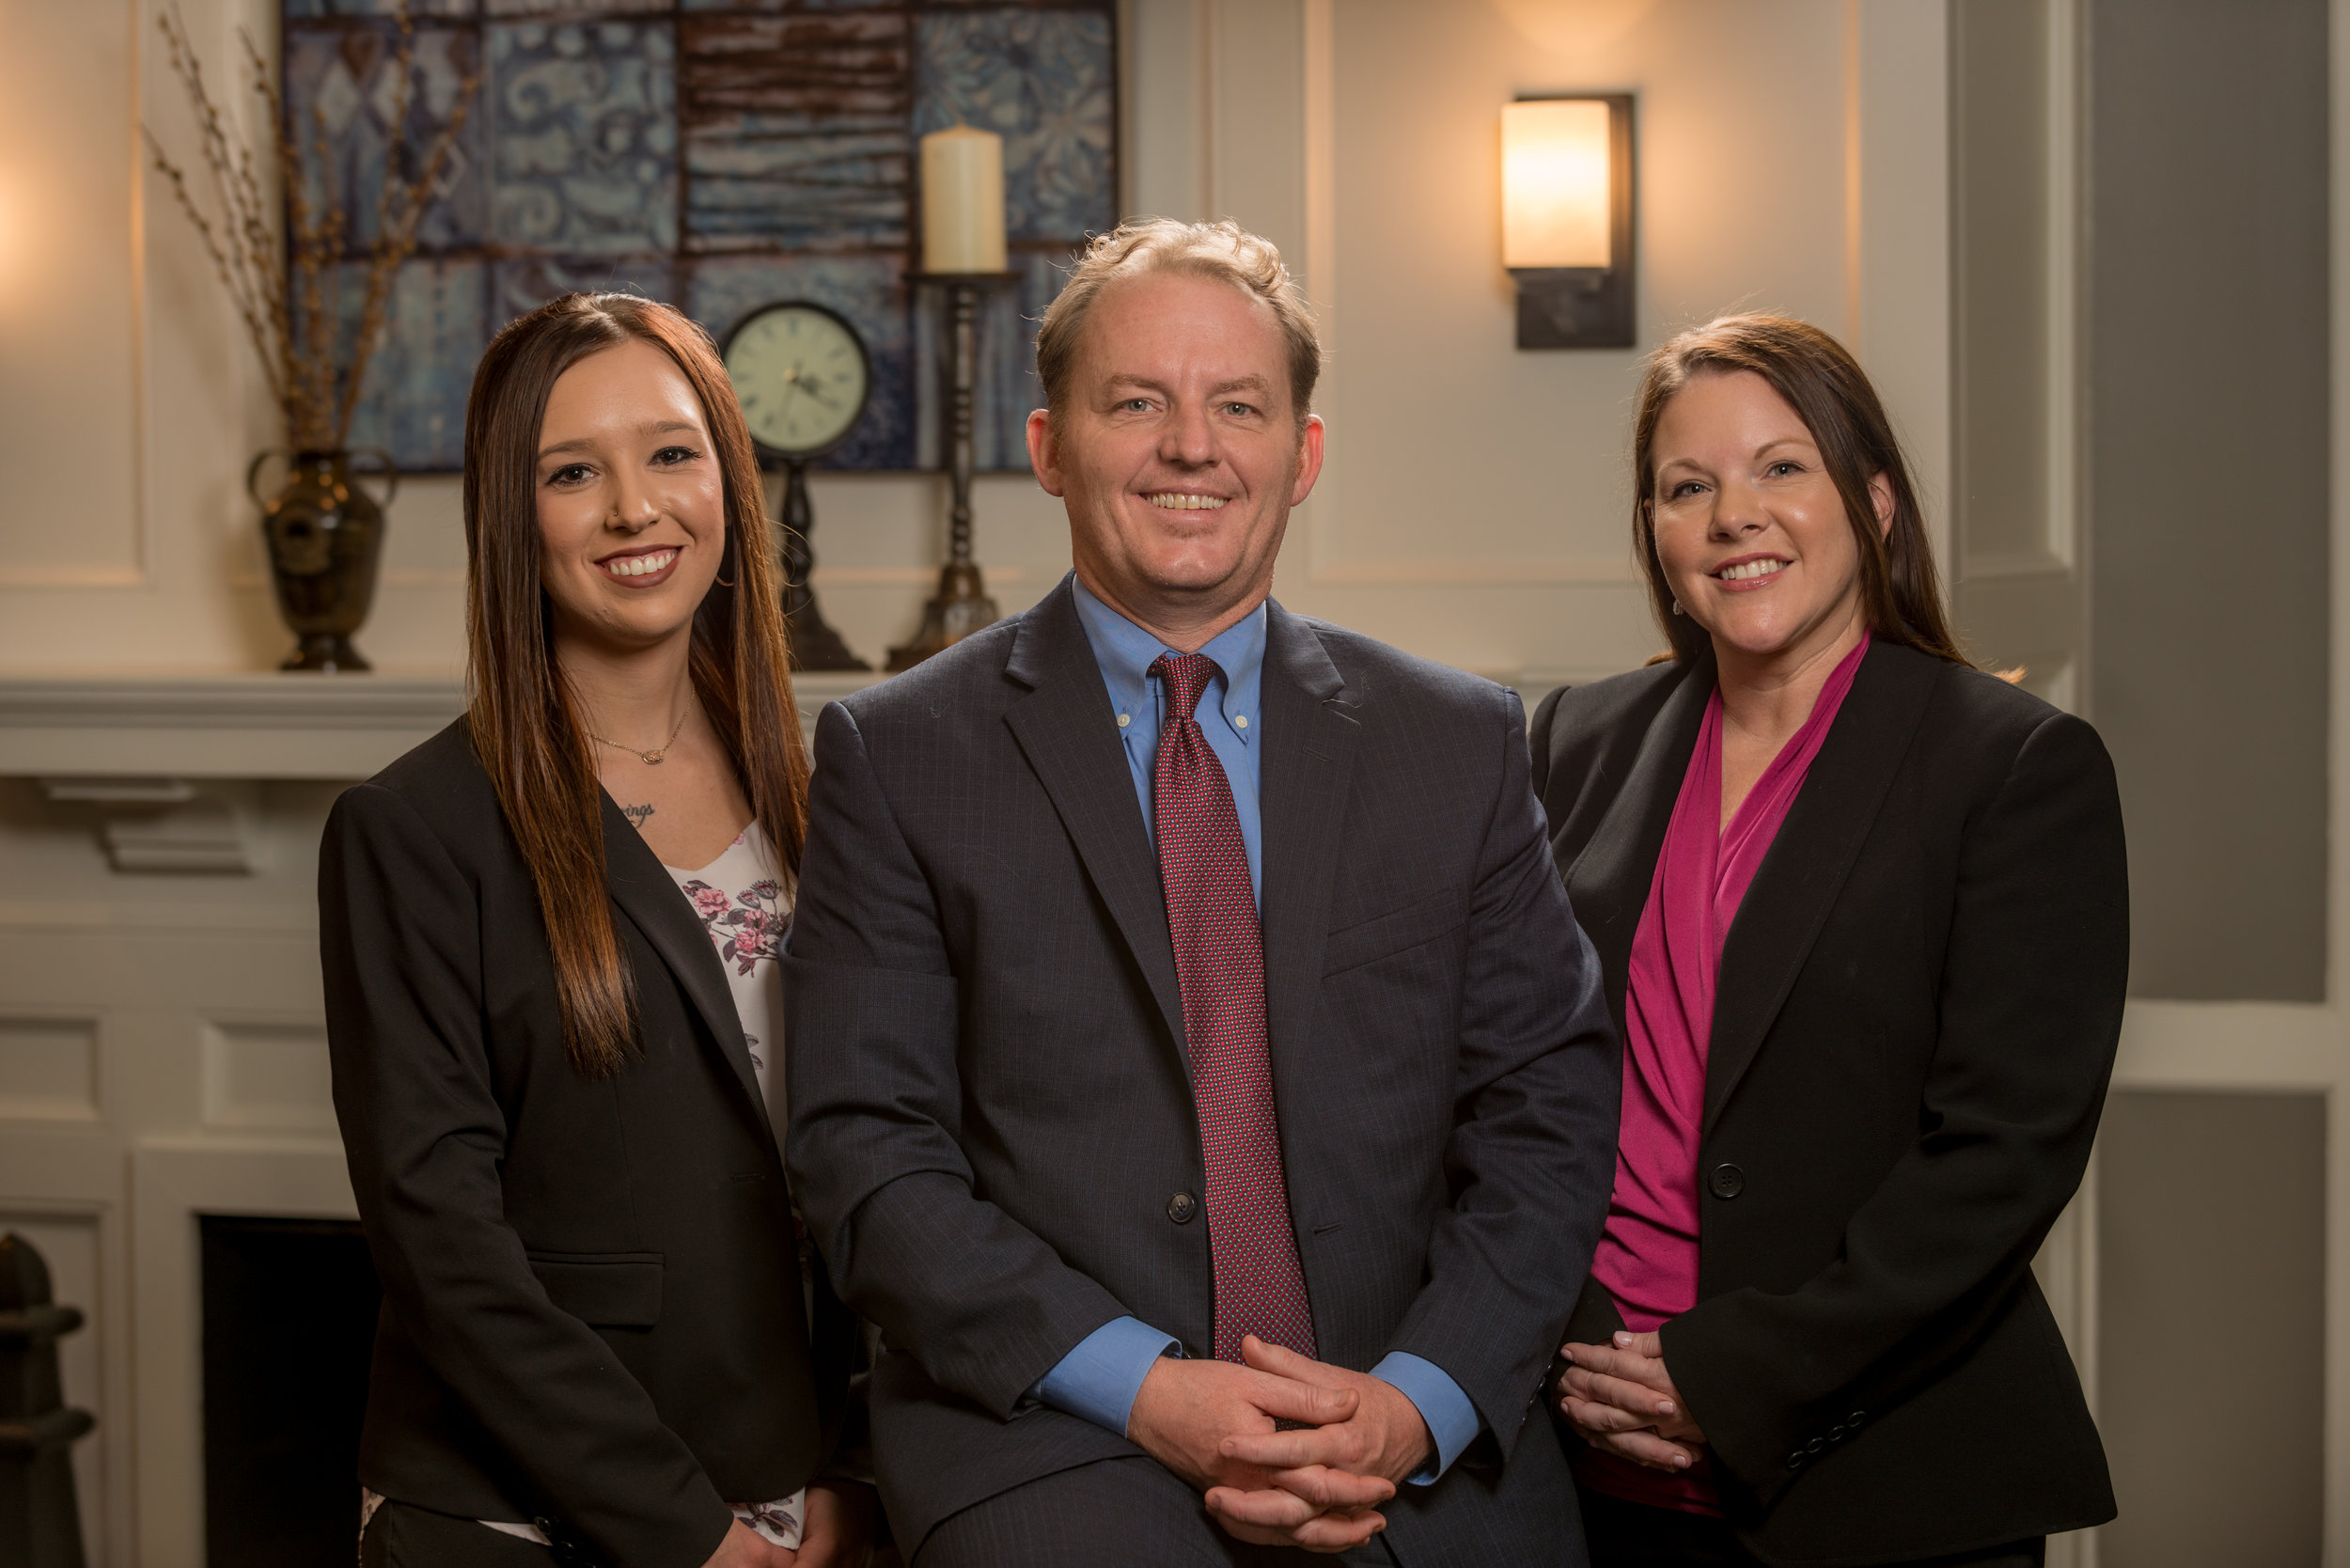 WE WANT TO BE  YOUR  PERSONAL ATTORNEYS